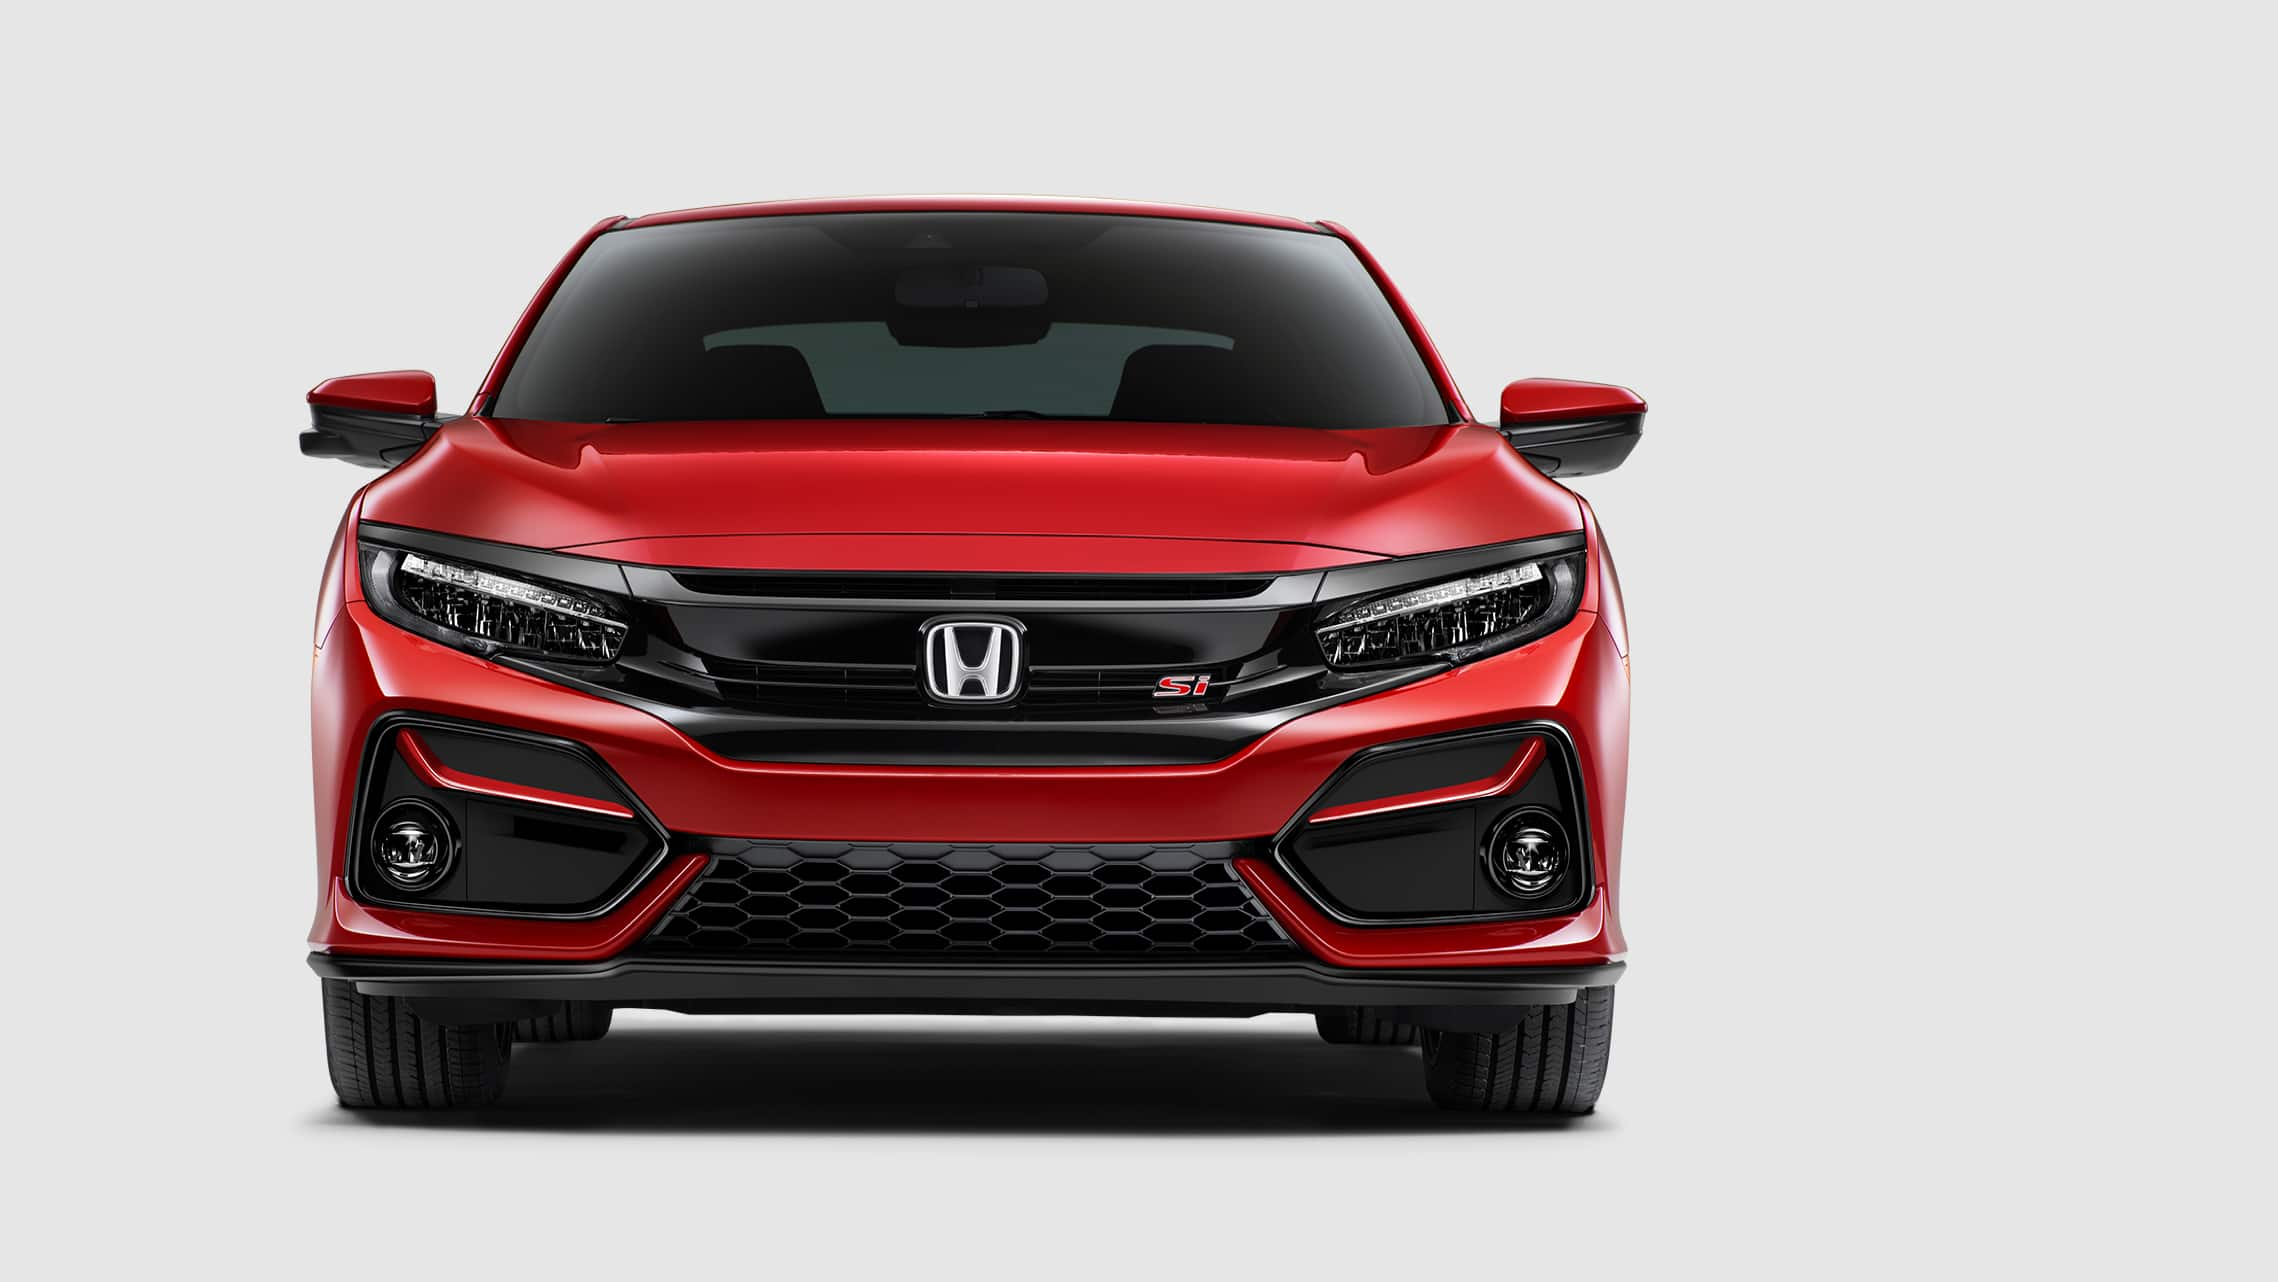 Front grille detail on 2020 Honda Civic Si Coupe in Rallye Red.